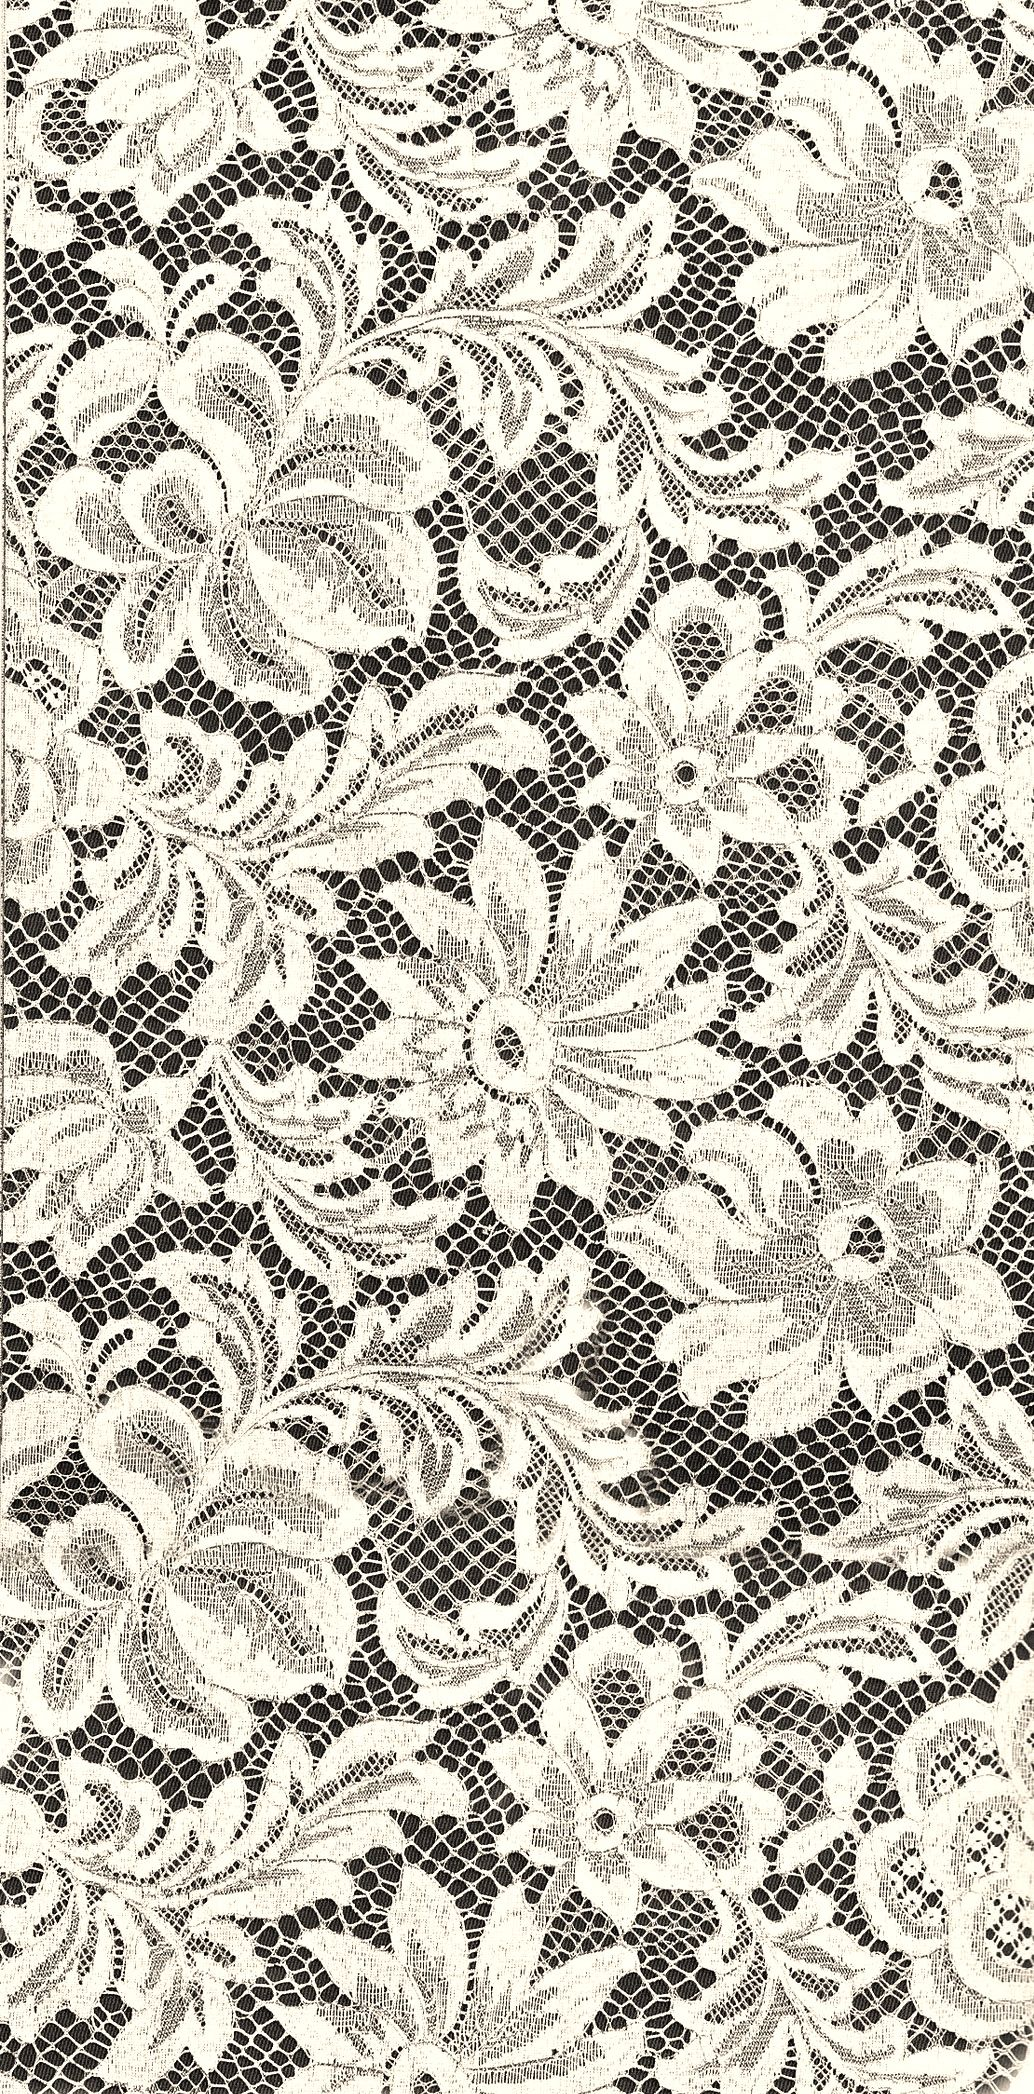 floral lace pattern swatch (With images) | Paper lace ...